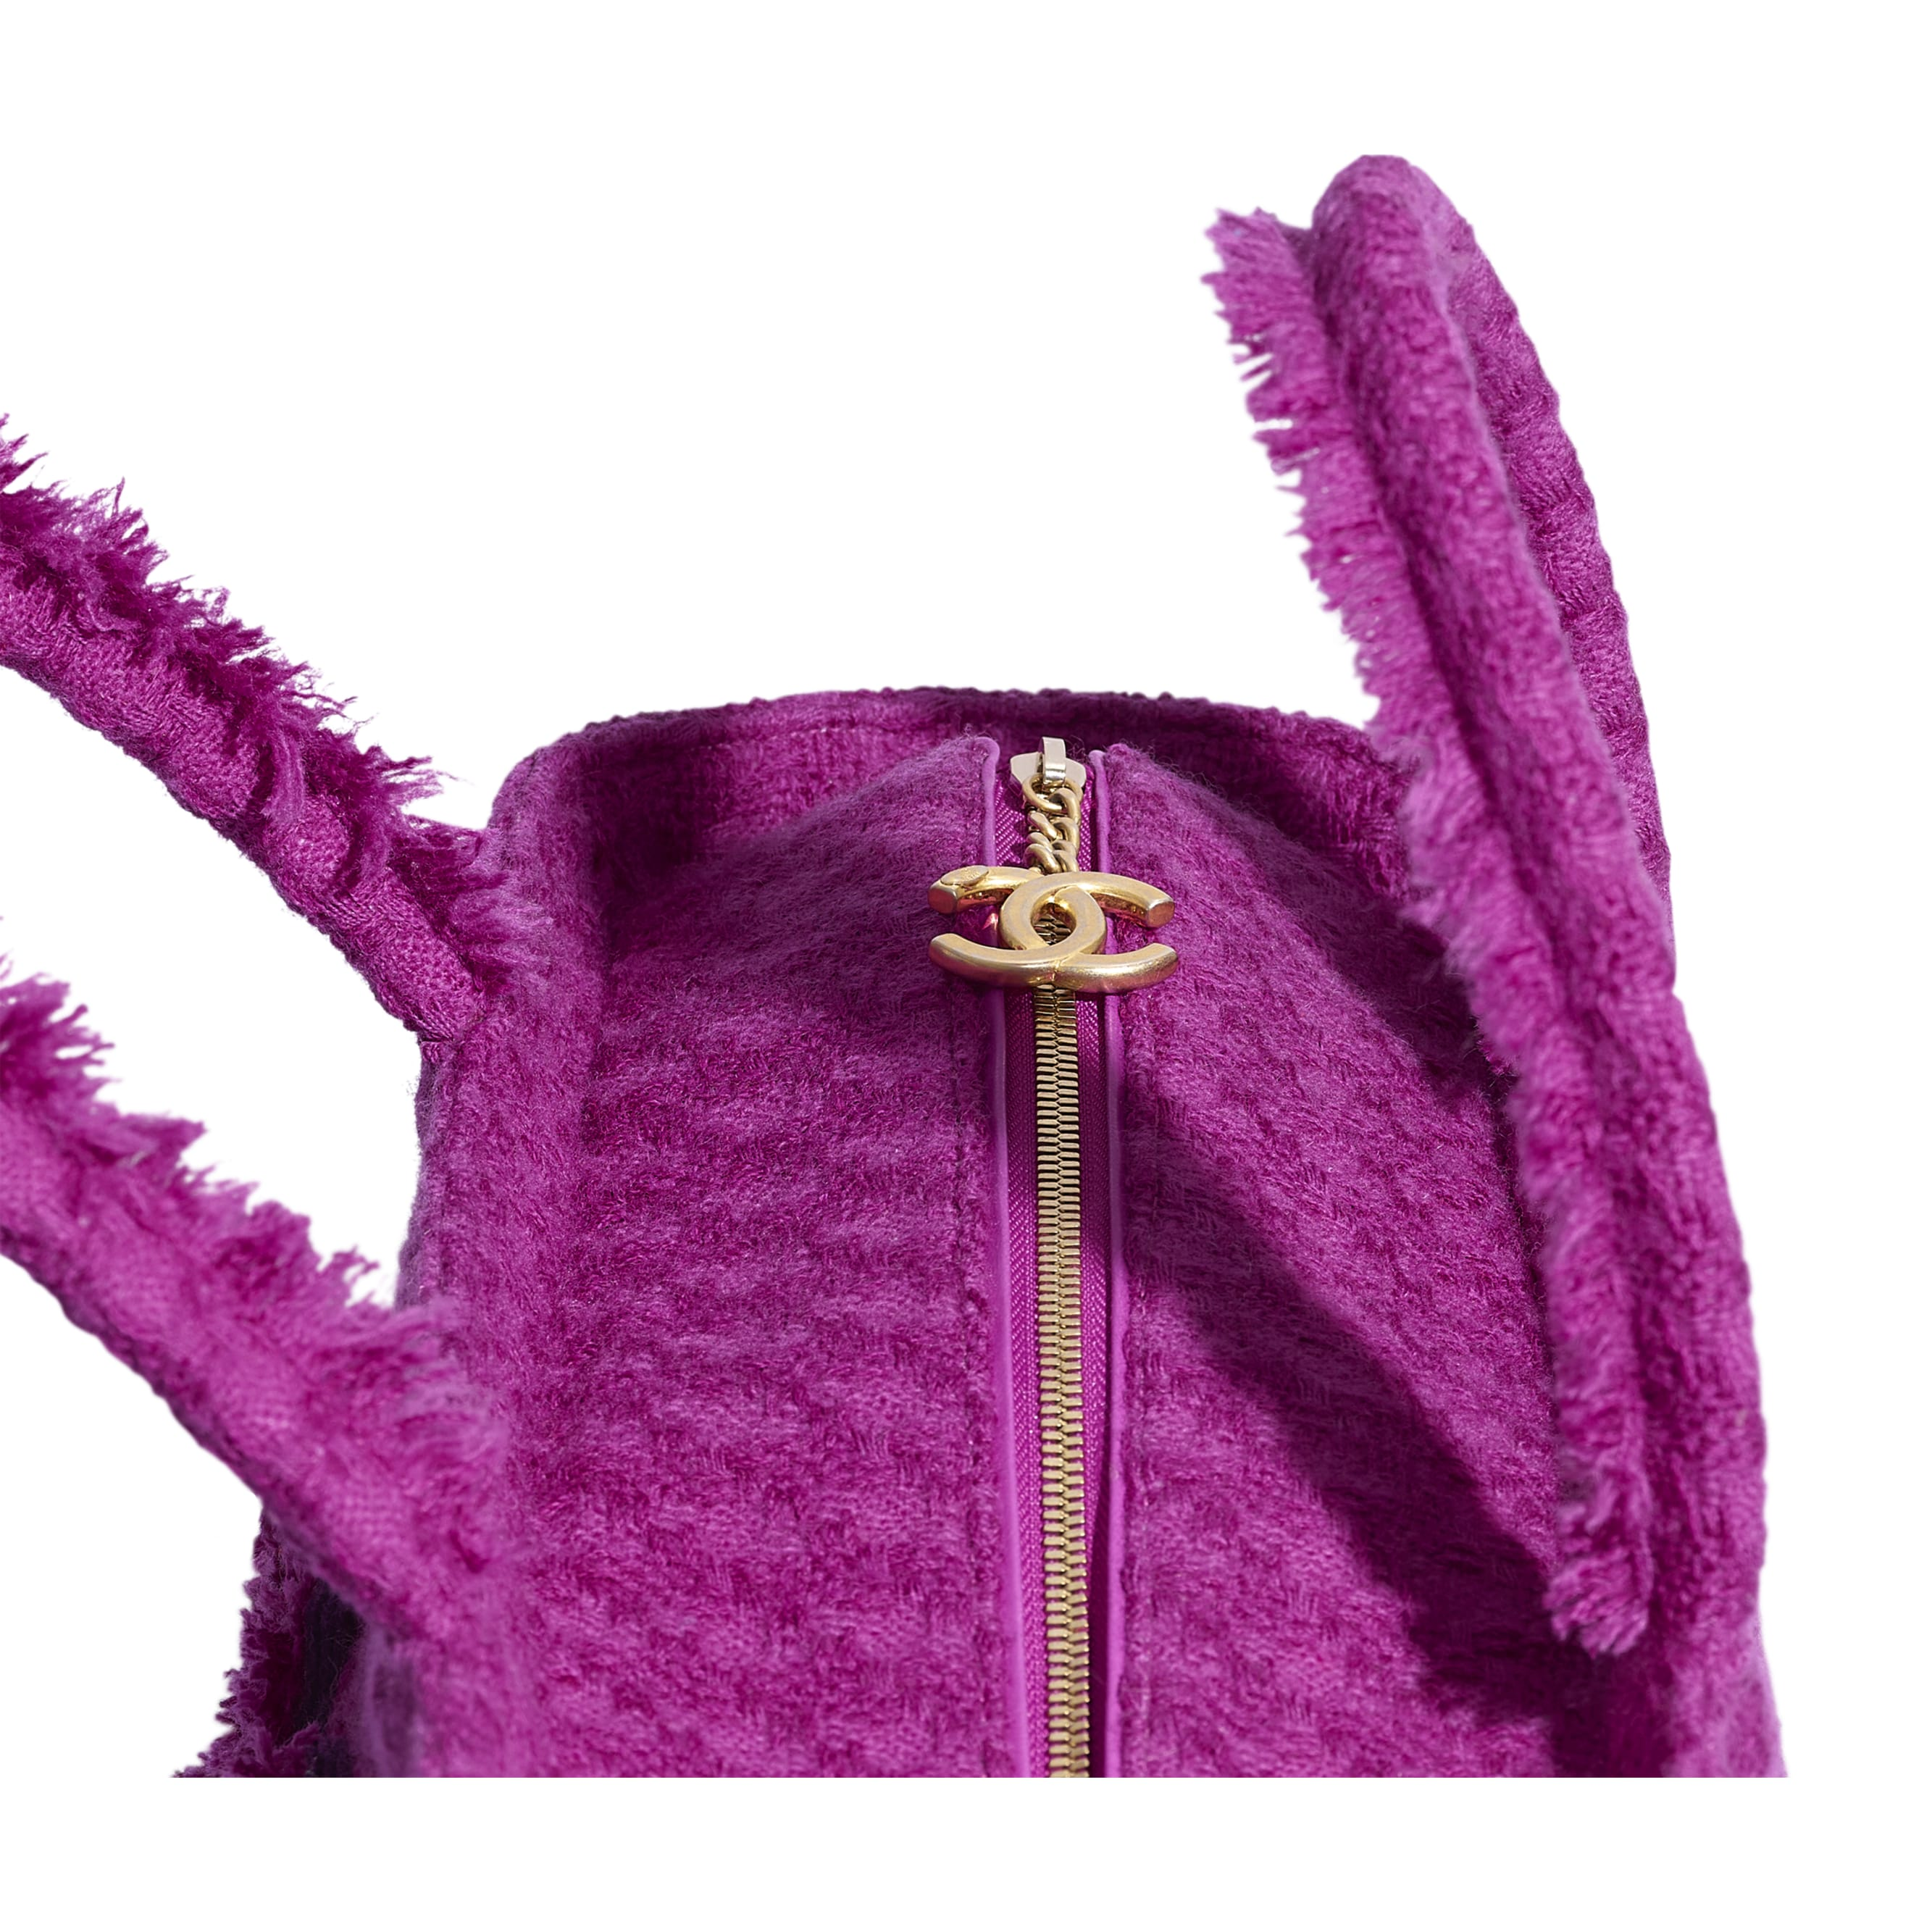 Large Zipped Tote - Fuchsia - Wool Tweed & Gold-Tone Metal - Extra view - see standard sized version